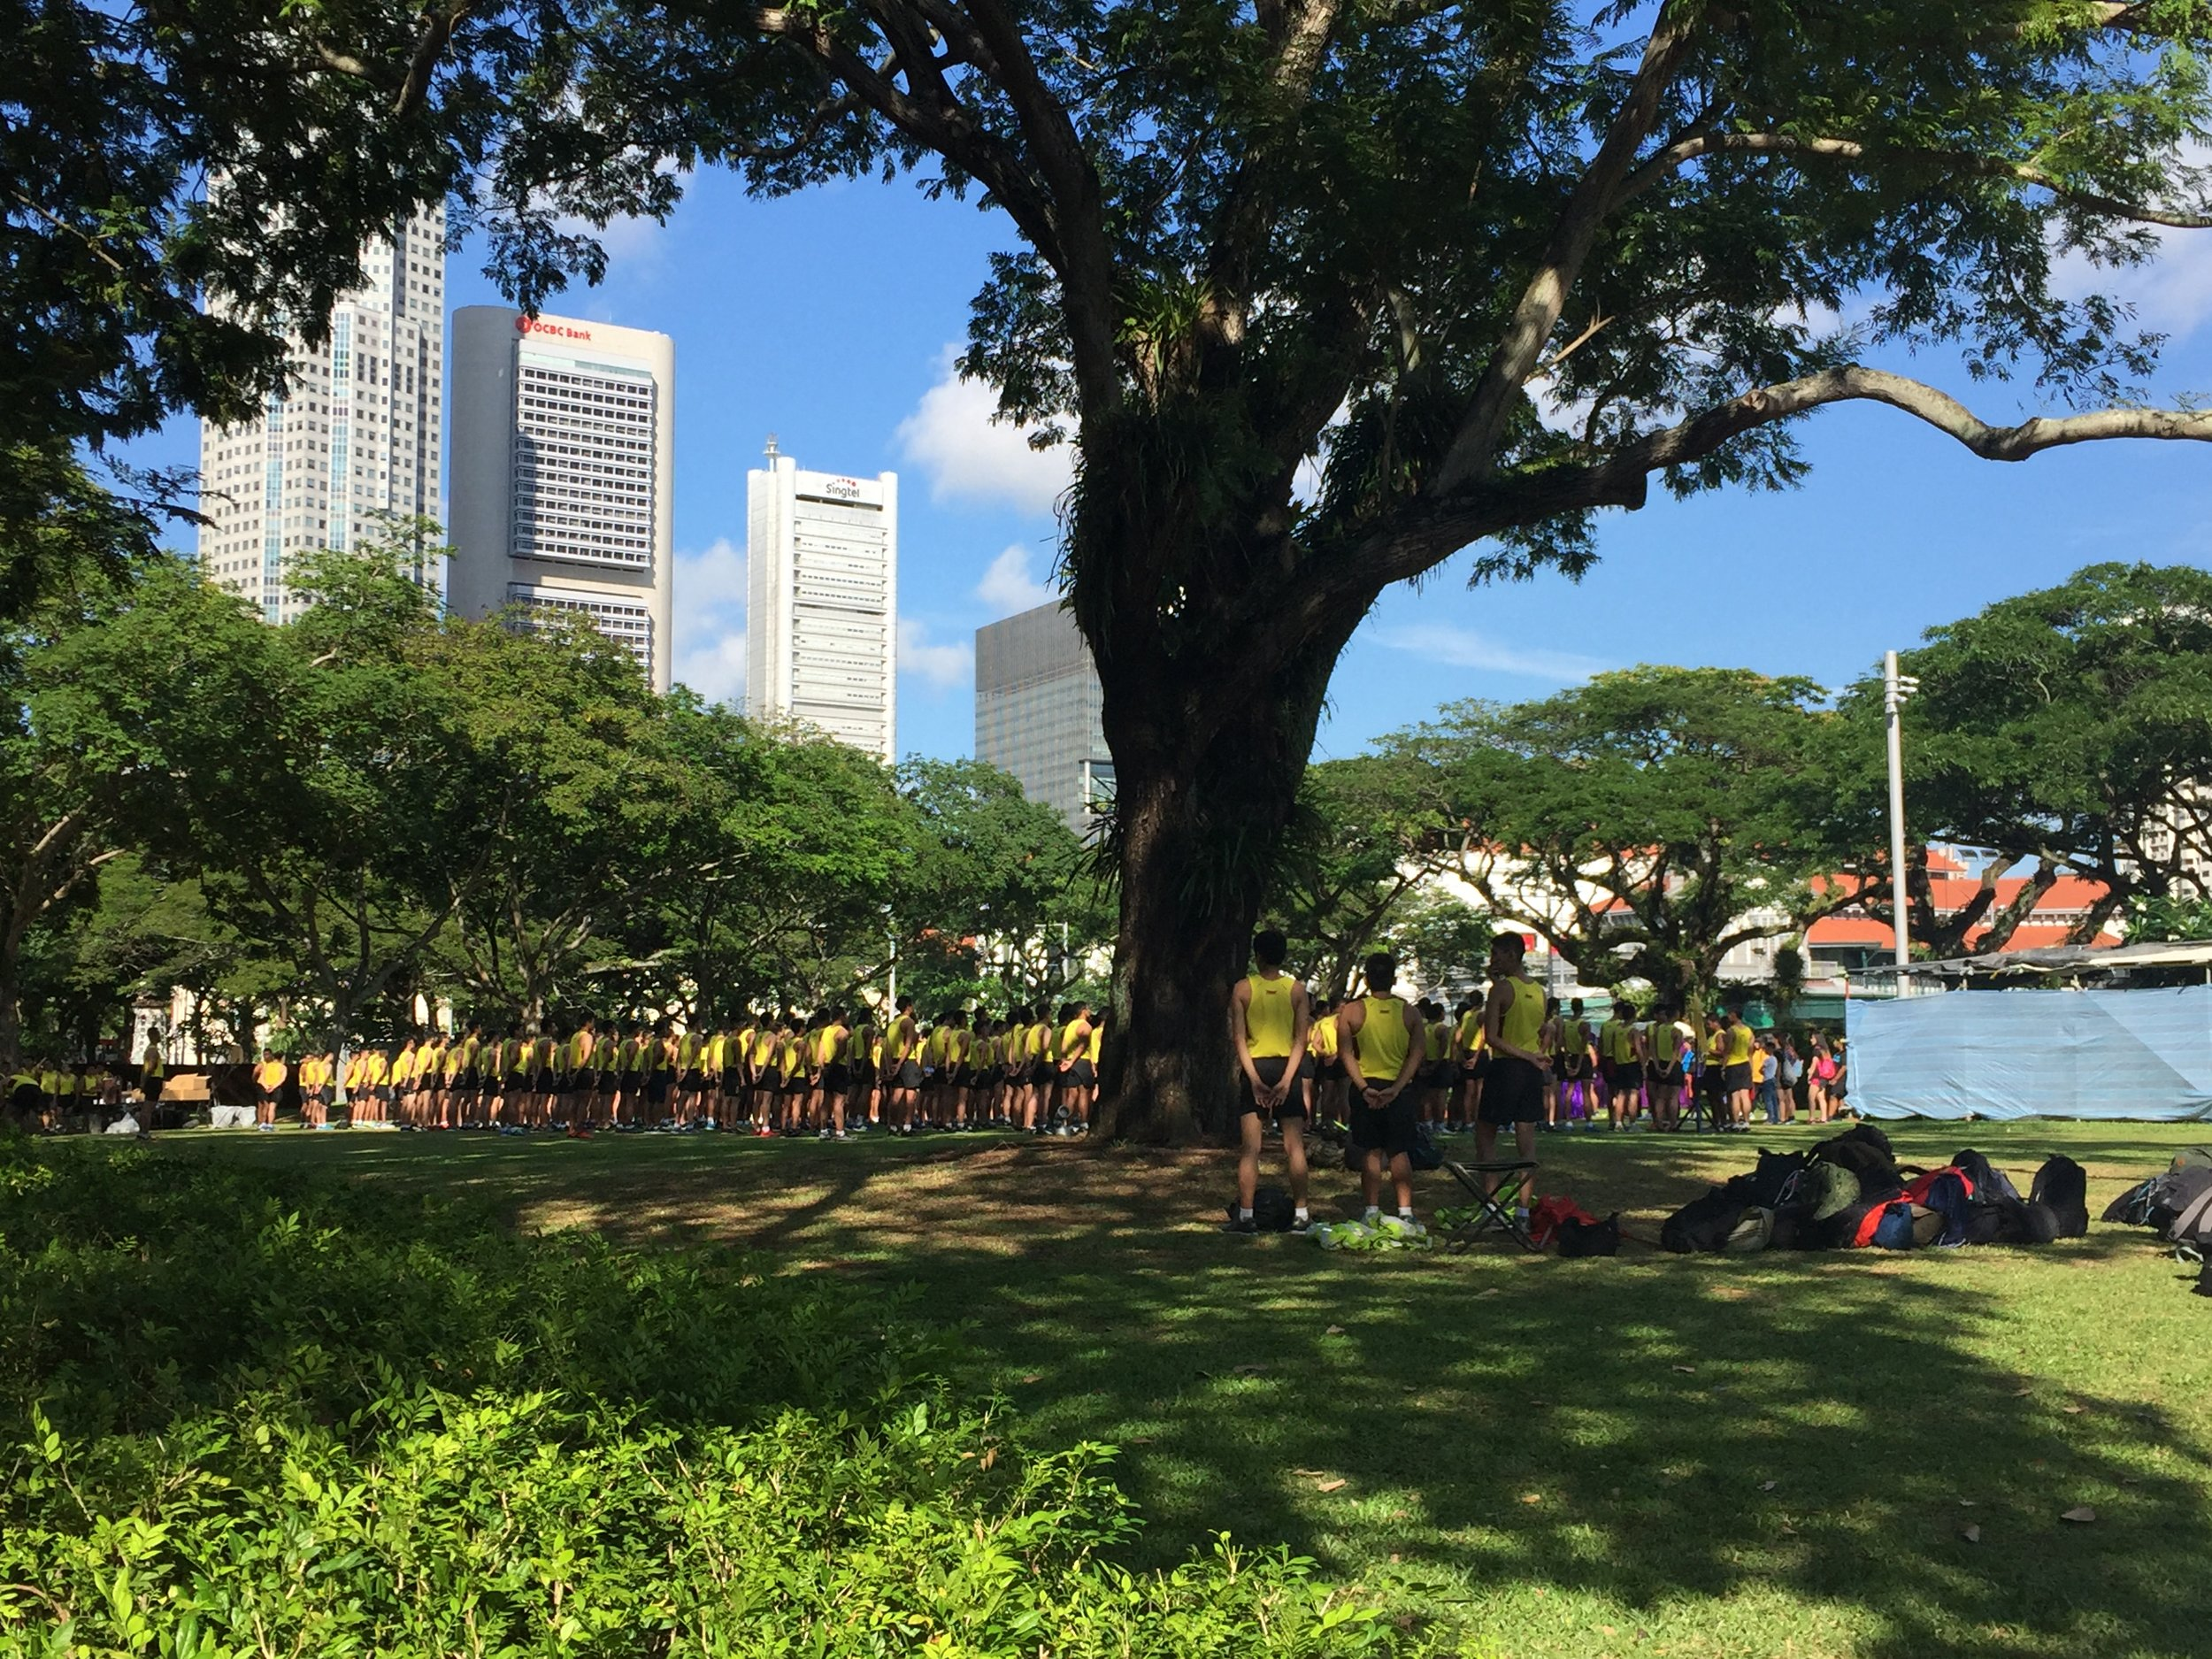 The recruits are training for Singapore's national day in August